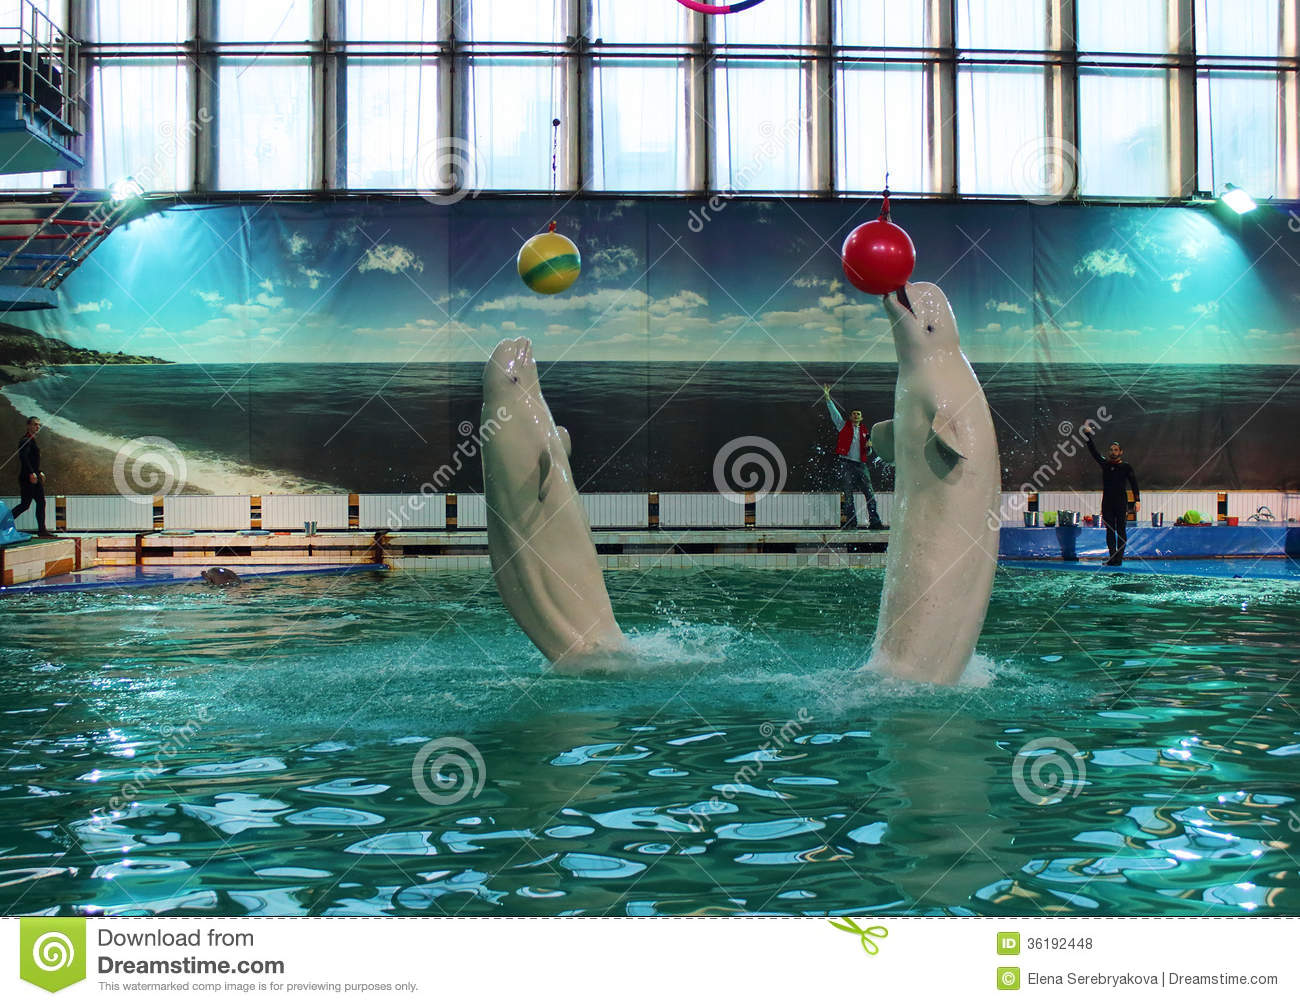 Dolphinarium in St. Petersburg: the sights of the northern capital 86